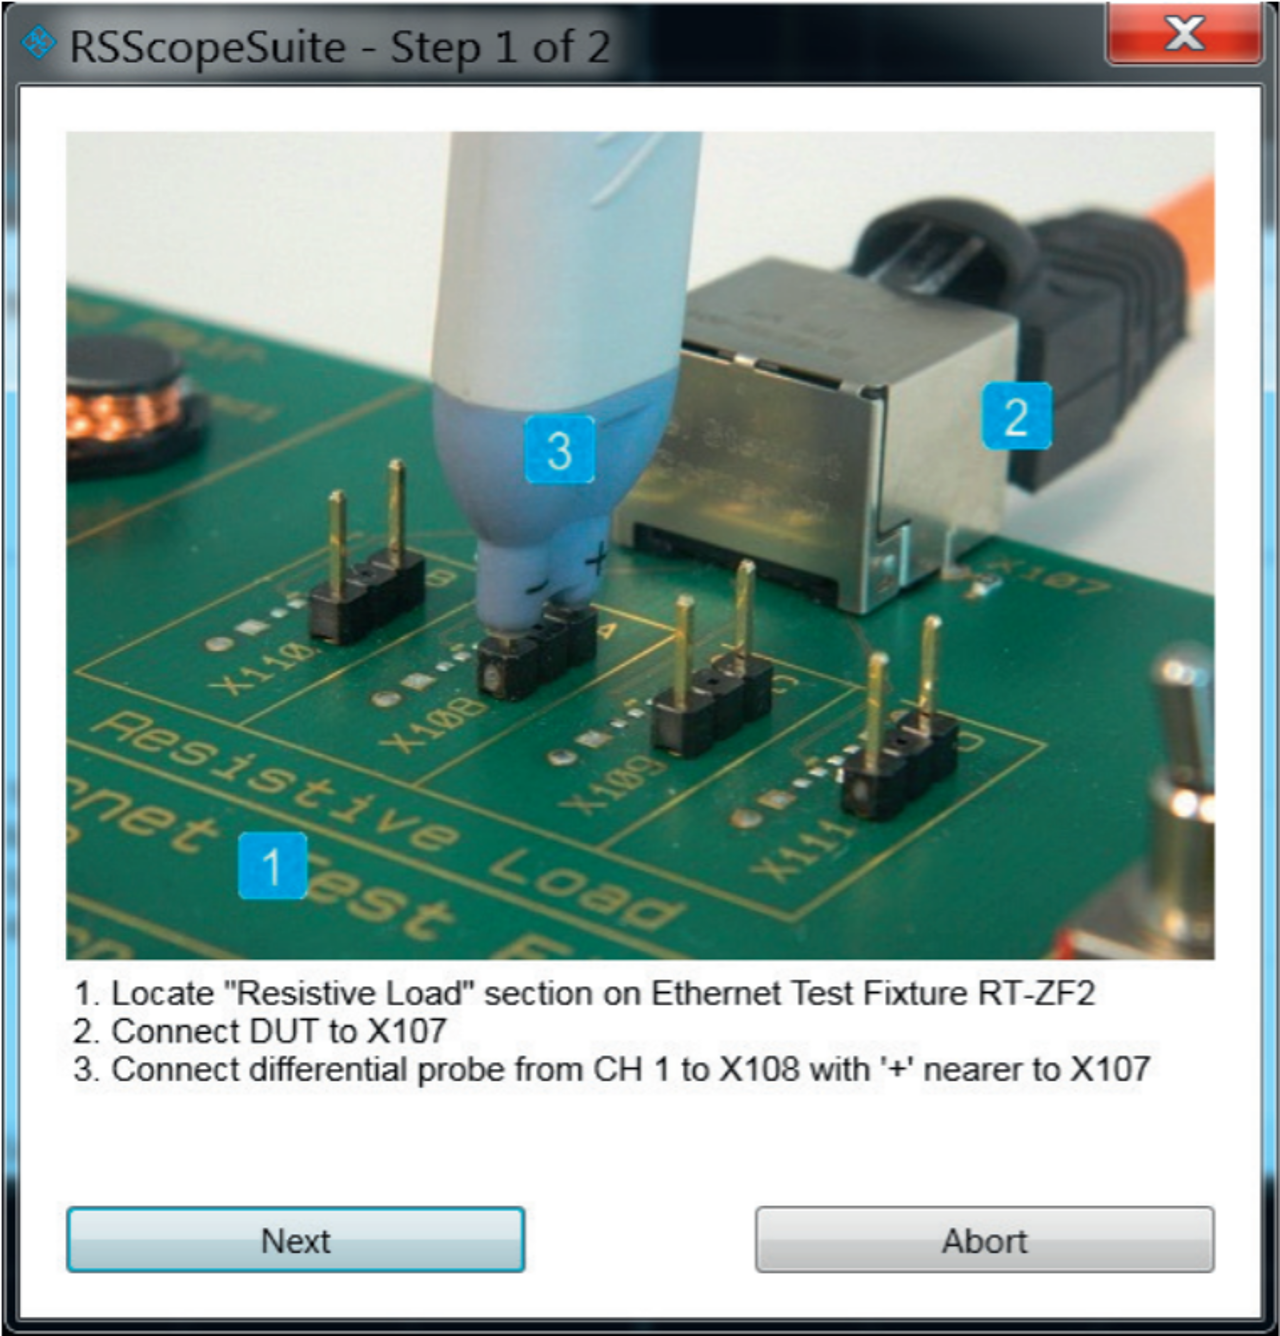 Test wizard with explanation of how to correctly connect to the test fixture.